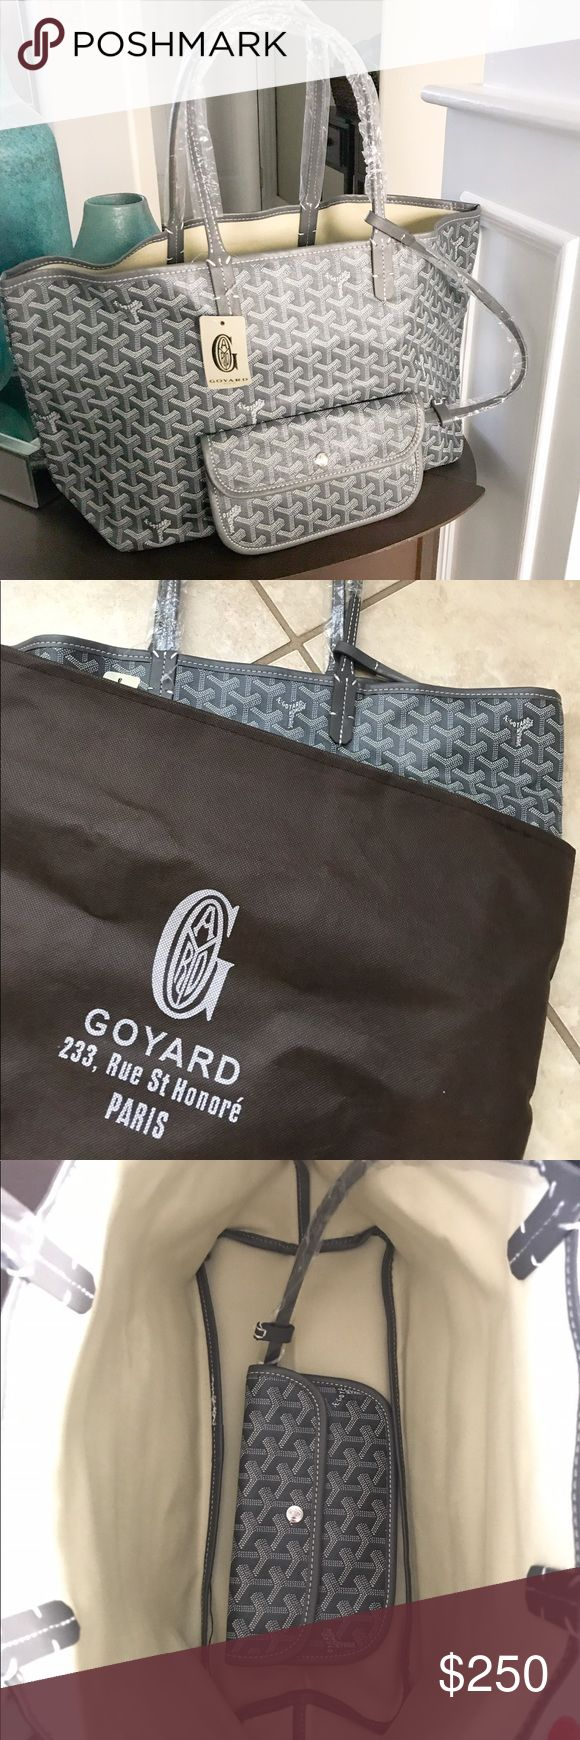 GOYARD CHEVRON PM TOTE WITH WALLET Hard to find. Dark Gray Goyard PM St. Louis tote new never worn, still in plastic, comes with tags attached and brown dust bag. Canvas interior, Coated canvas exterior with cowhide leather handles.  measurements-  L: 18in W: 6in H: 11in Authentic Burgundy  St. Louis Pm retails at $1,560. Inspired Price reflects  🚫trades 💸 offers use button Bags Shoulder Bags